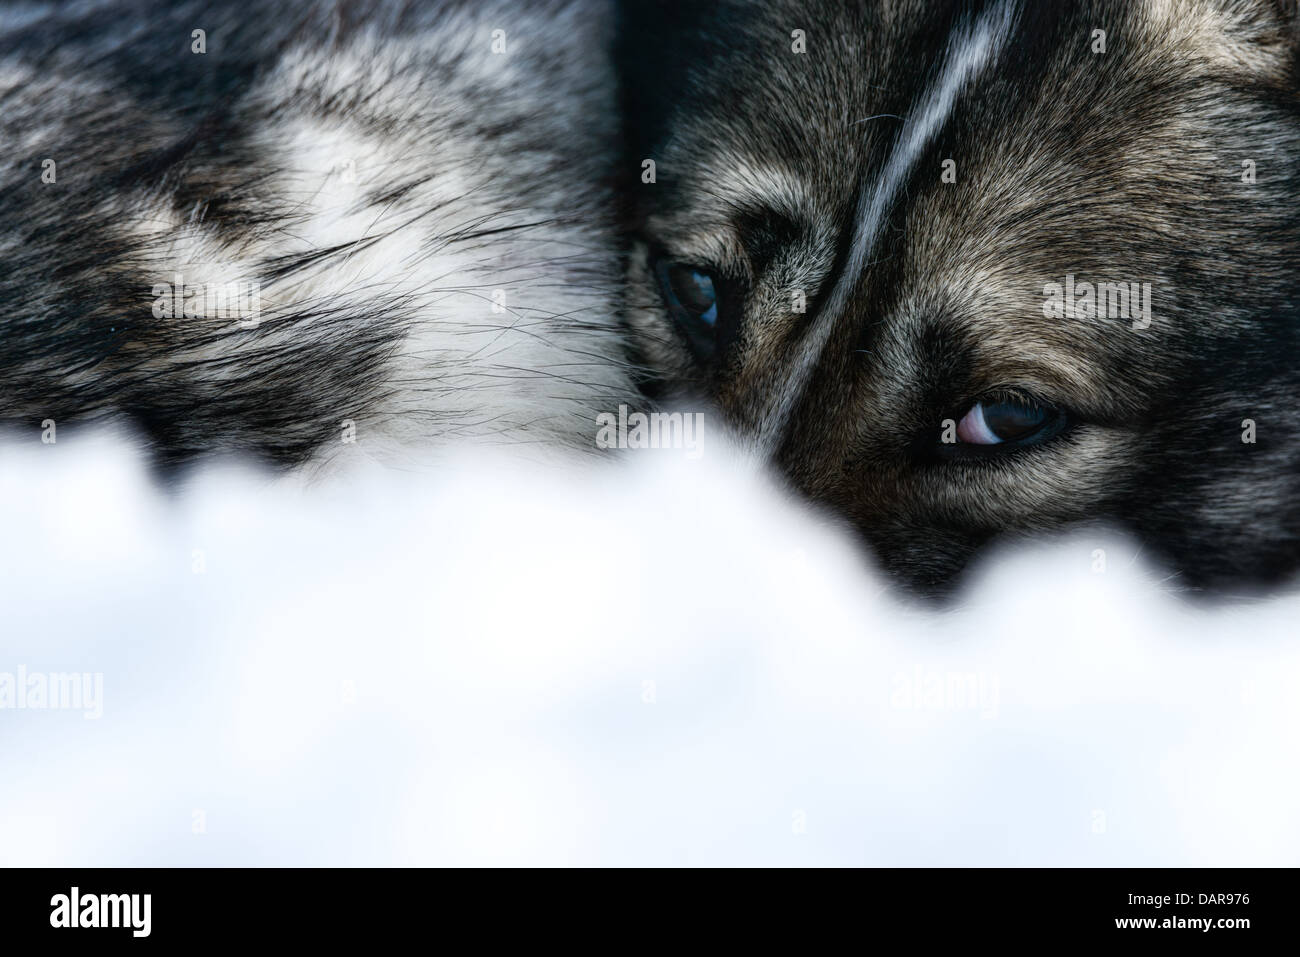 Siberian Husky, close-up of face, Sweden - Stock Image